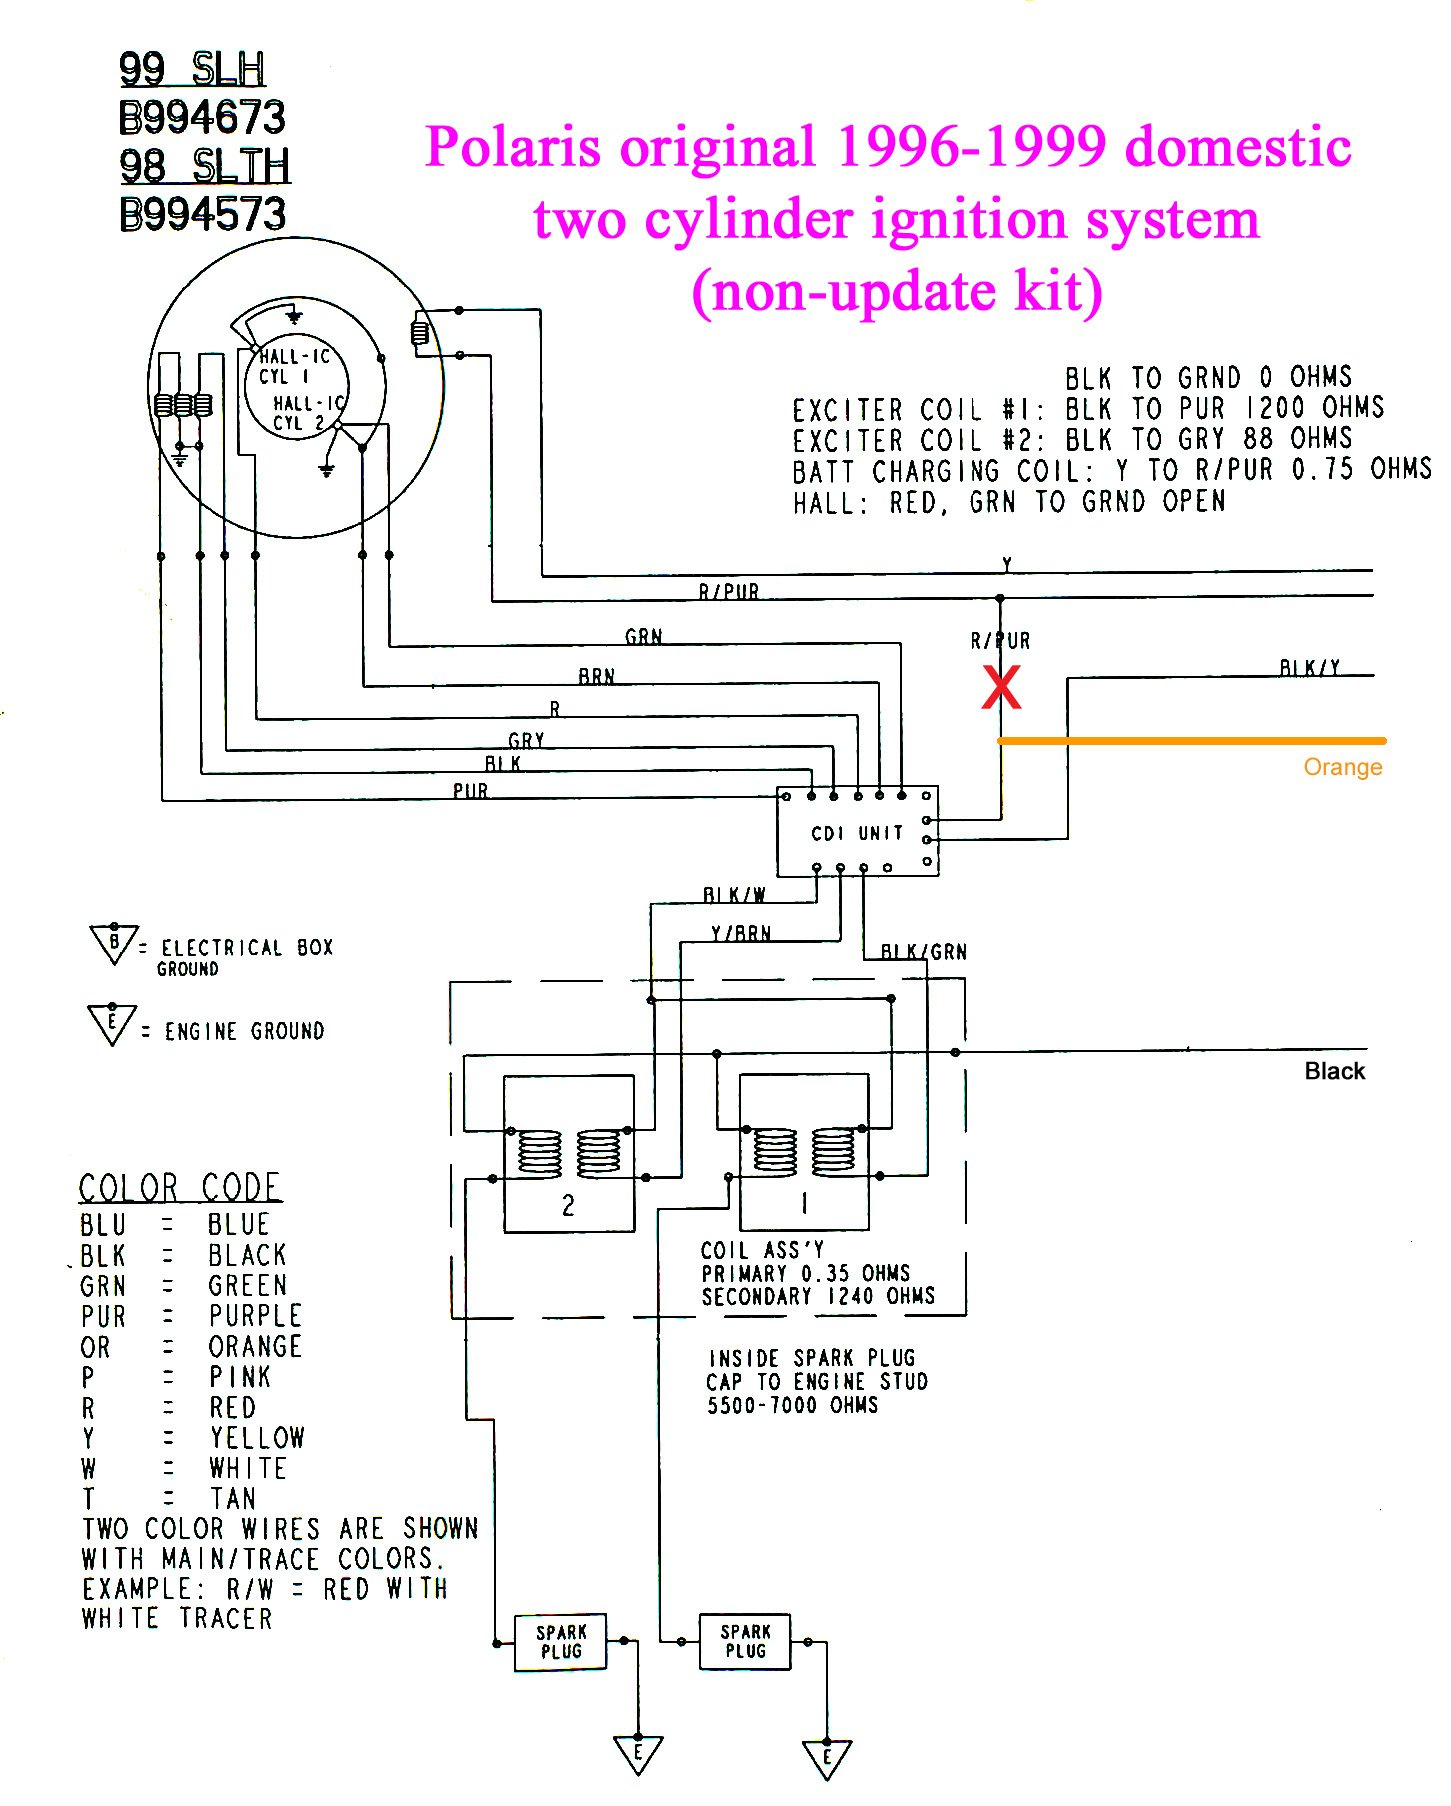 I Do Have A 1996 Polaris Sl700 Need Information Regarding The Wiring Diagrams Graphic